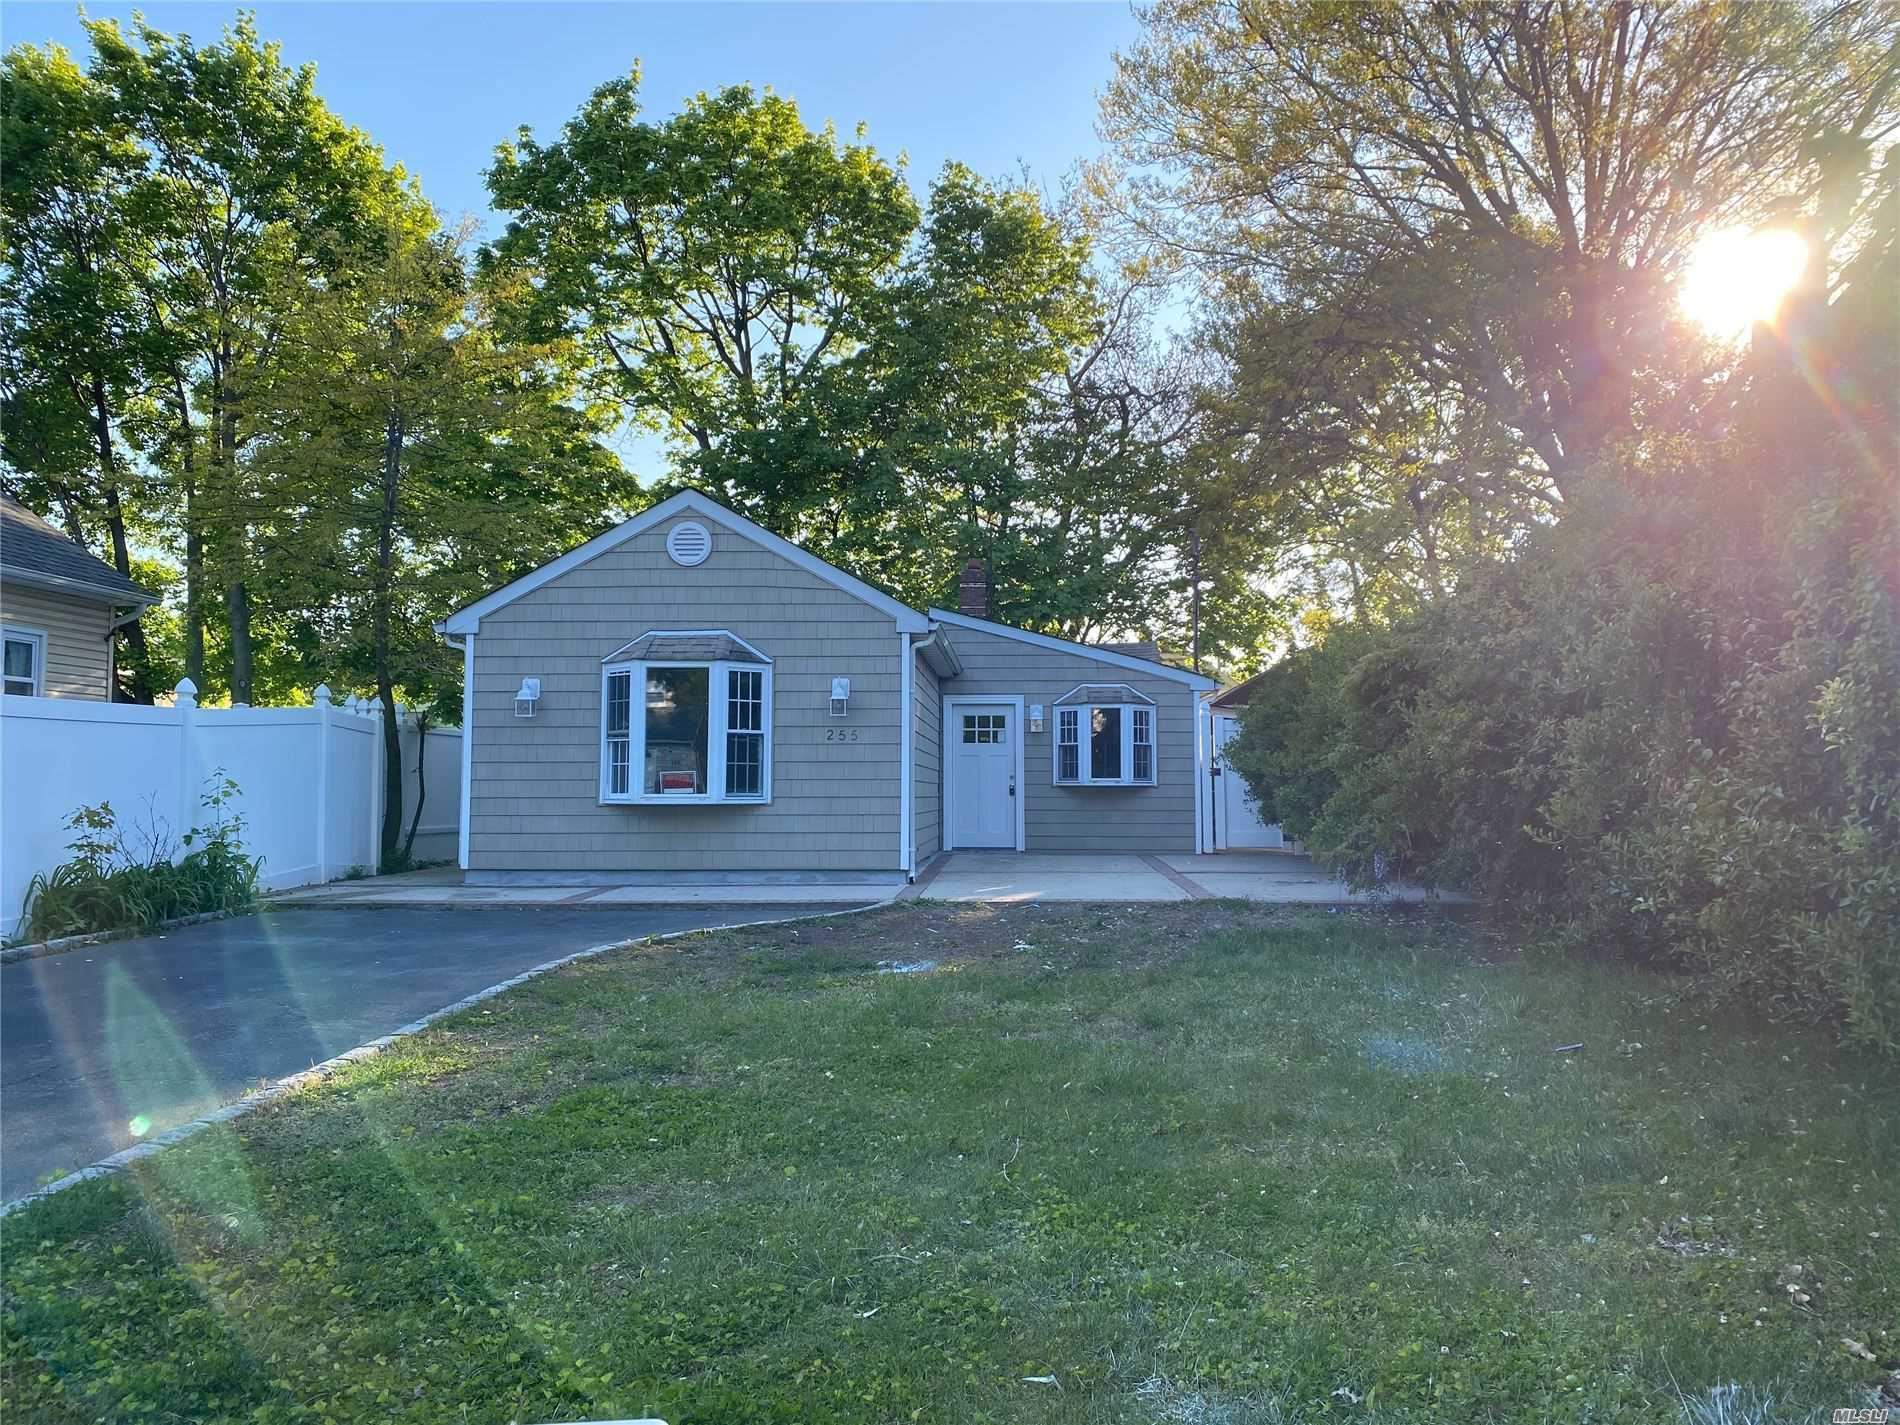 255 Lawrence St, Uniondale, NY 11553 - MLS#: 3214839